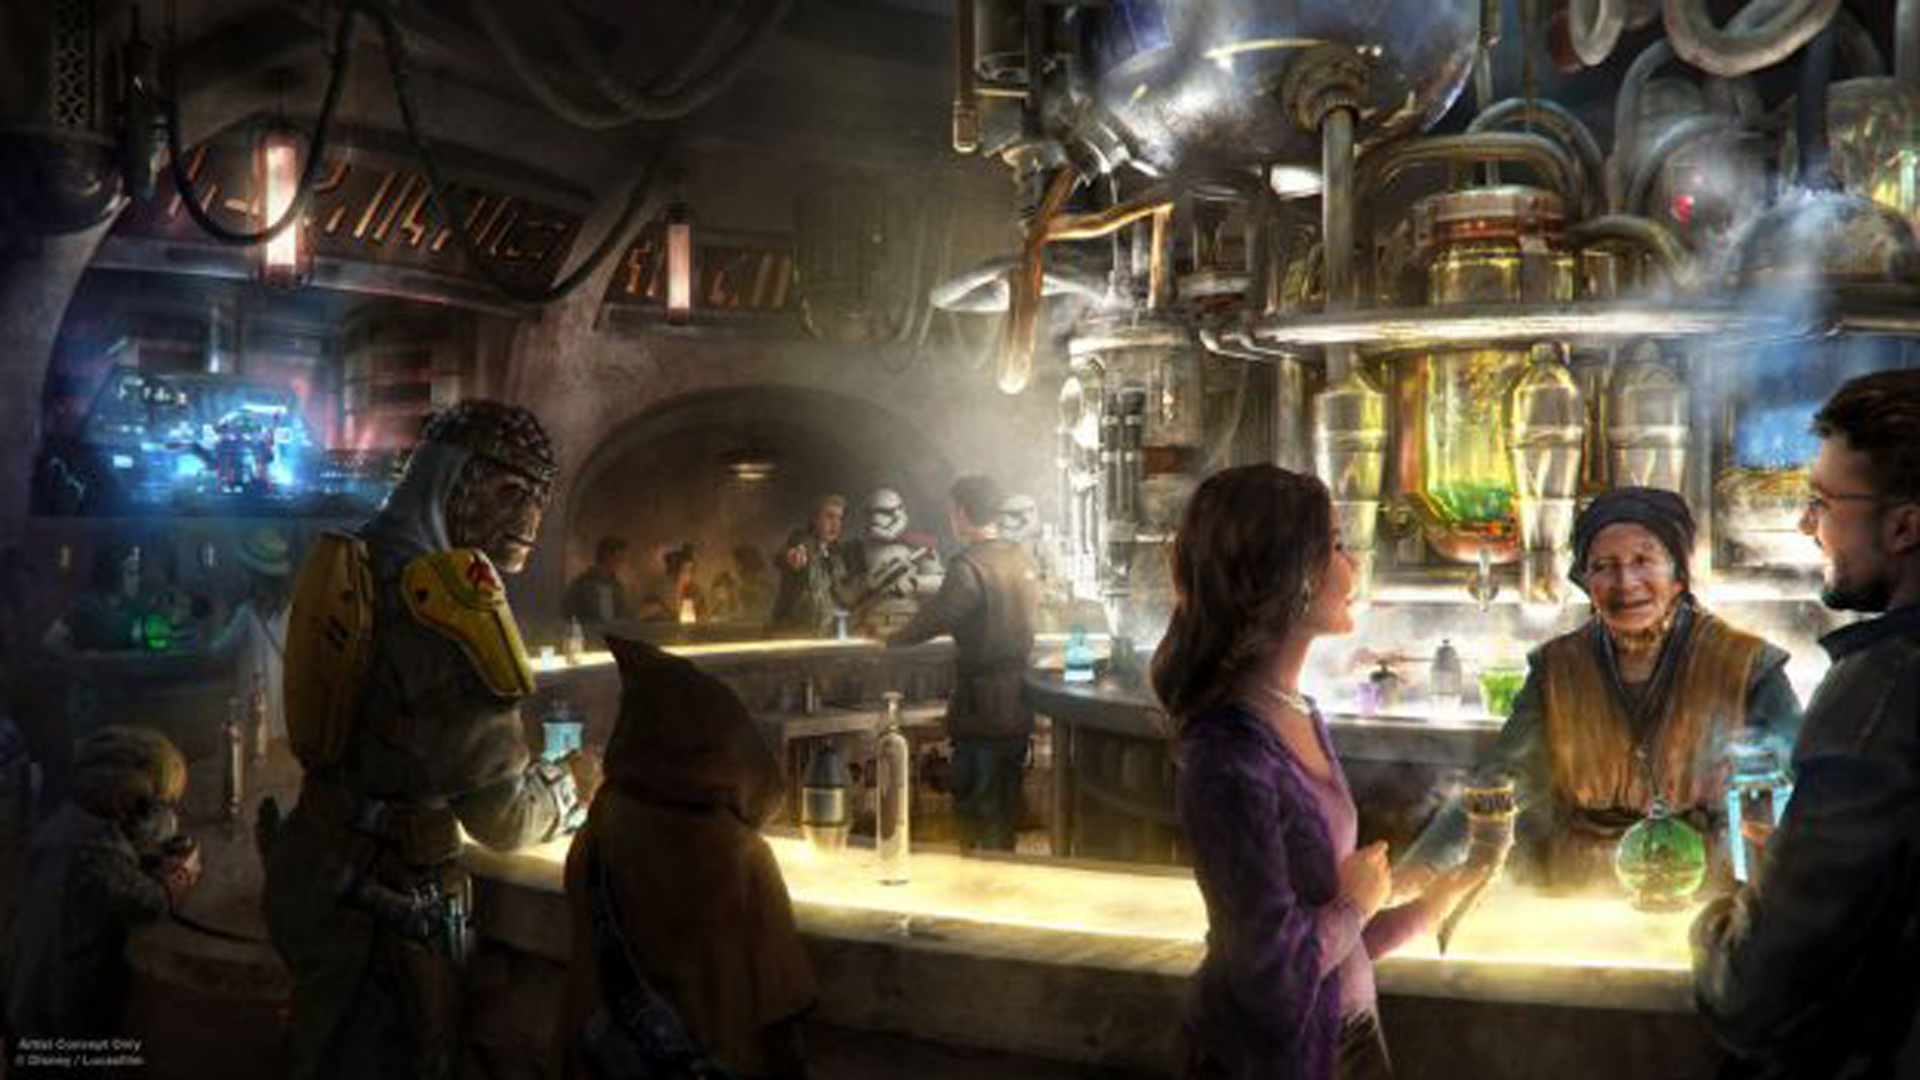 An artist's rendition of Oga's Cantina, which is coming to Star Wars: Galaxy's Edge at Disneyland in 2019. (Credit: Disneyland Resort)